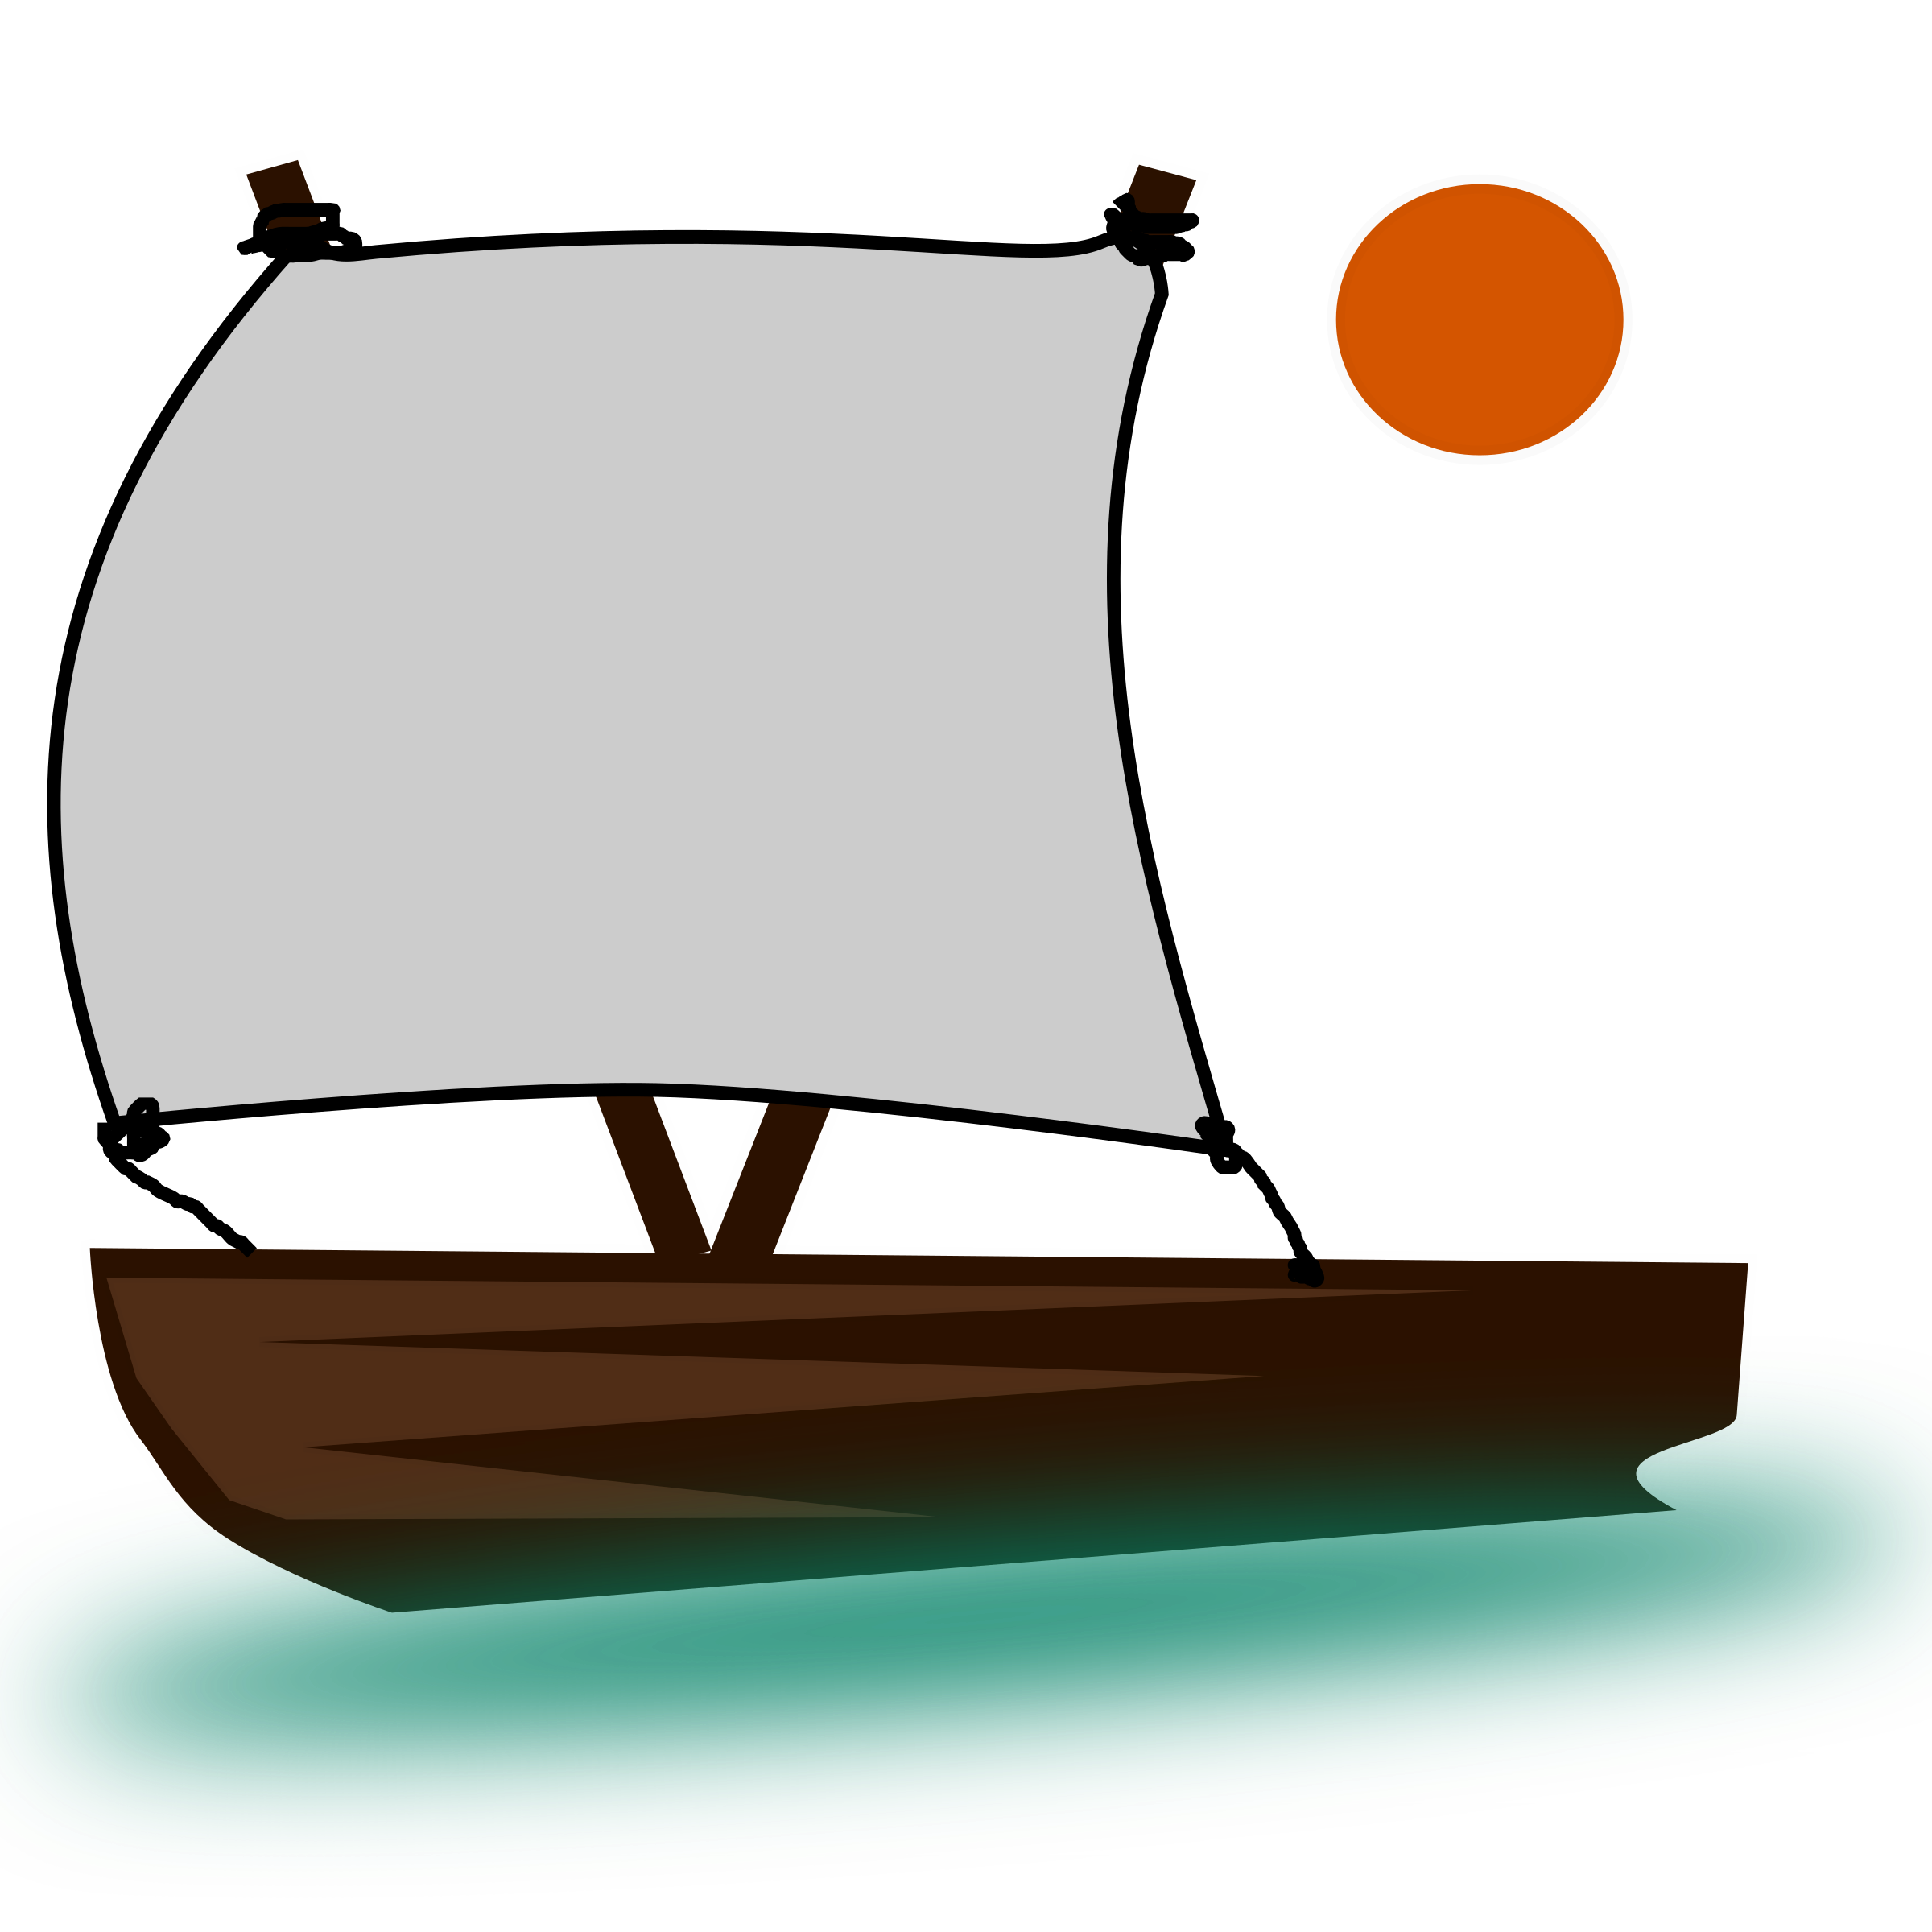 Sailing Ship clipart pirate the caribbean Clipartwork Boat (6744) Clipart Clipart